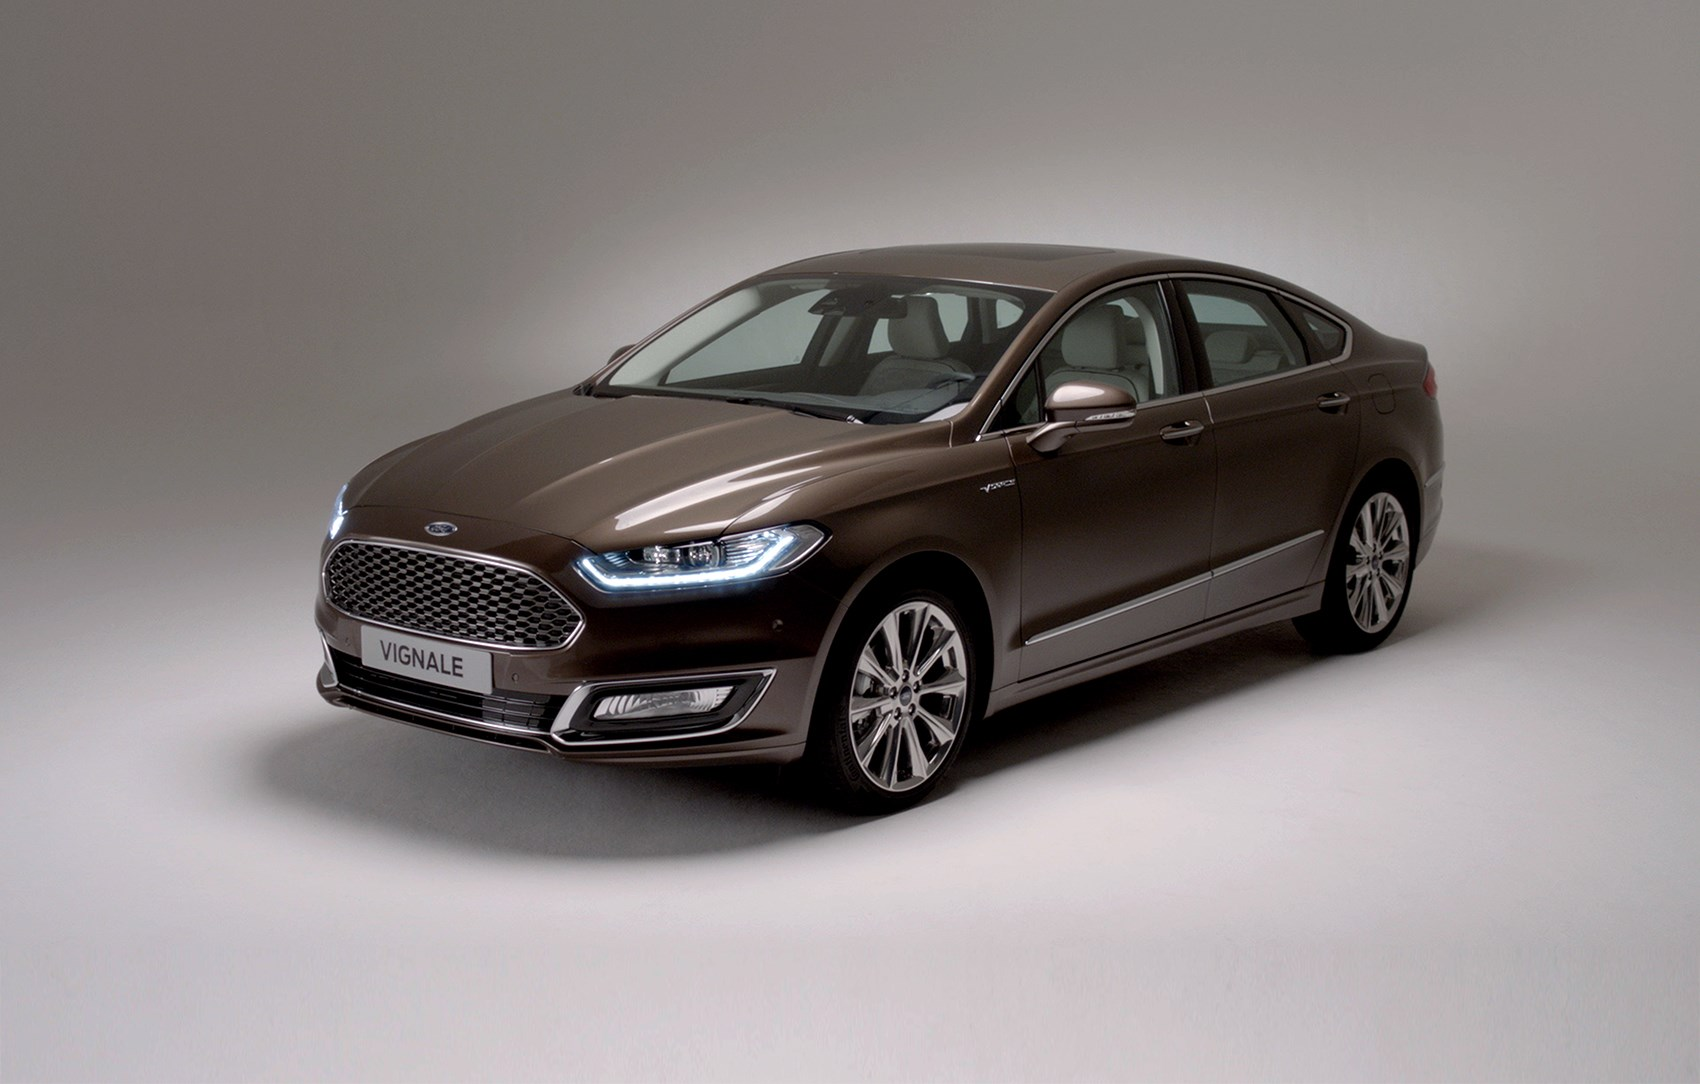 ford vignale mondeo 2015 unveiled are you ready for the 29k mondeo by car magazine. Black Bedroom Furniture Sets. Home Design Ideas